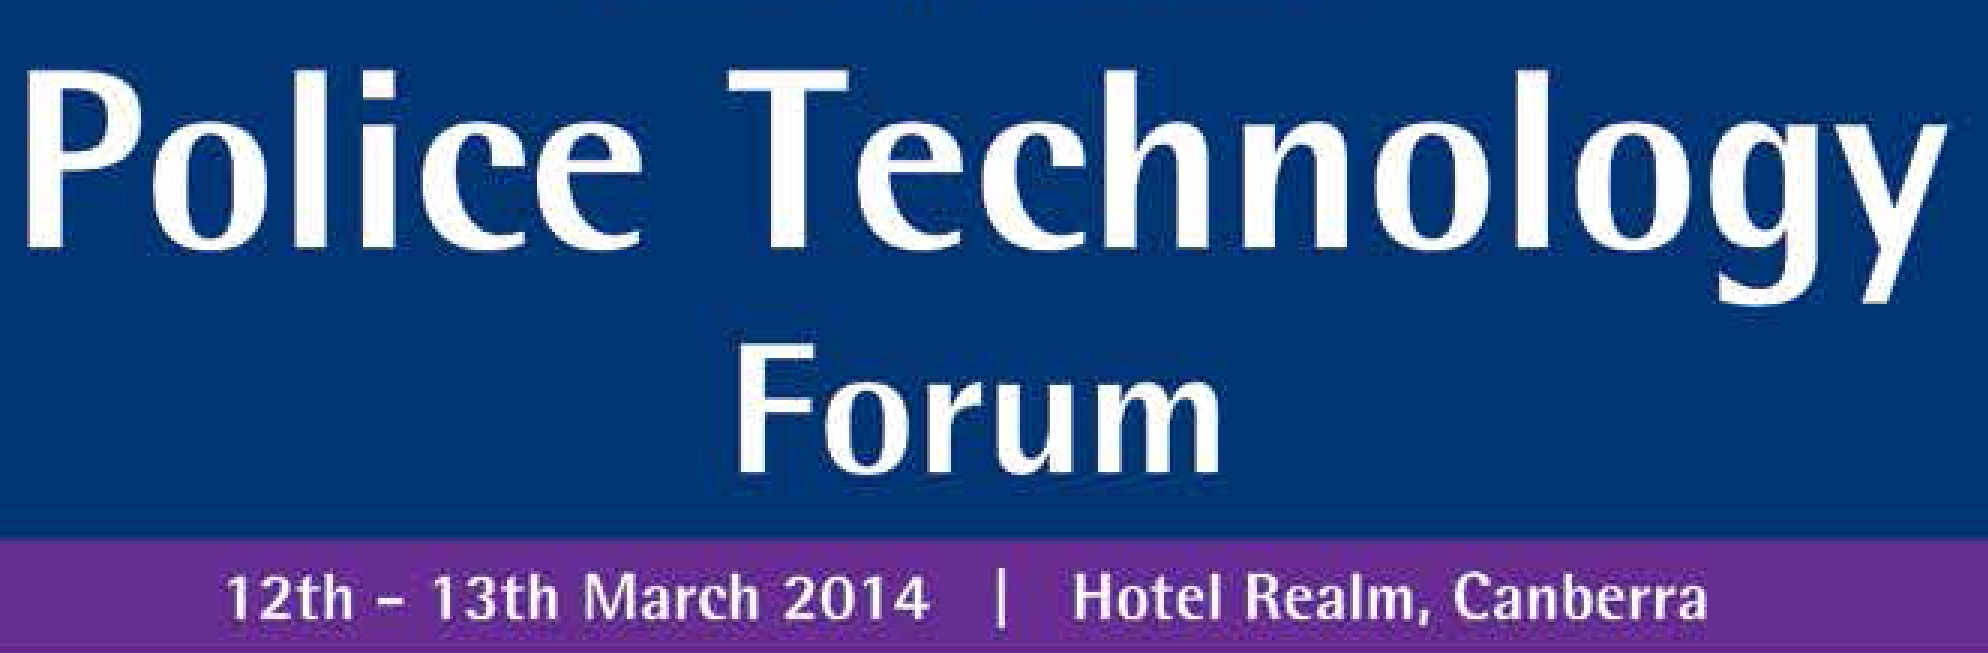 Police Technology Forum Canberra